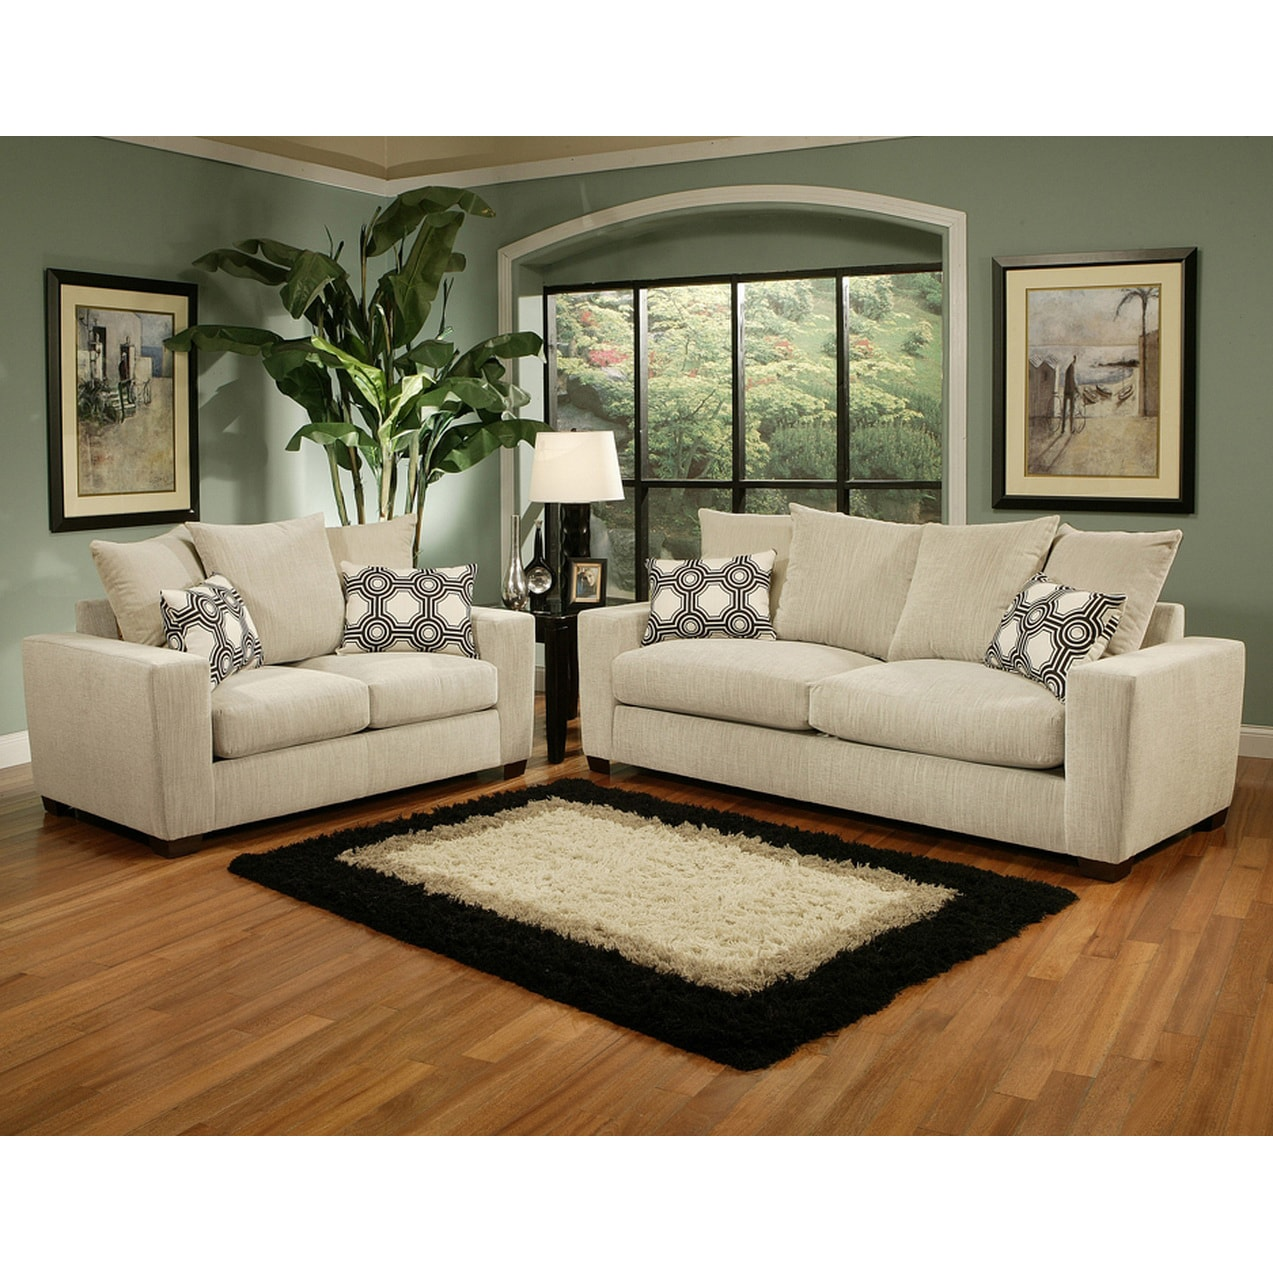 Picture of: Furniture Of America Marty 2 Piece Sofa And Love Seat Set Overstock 5329820